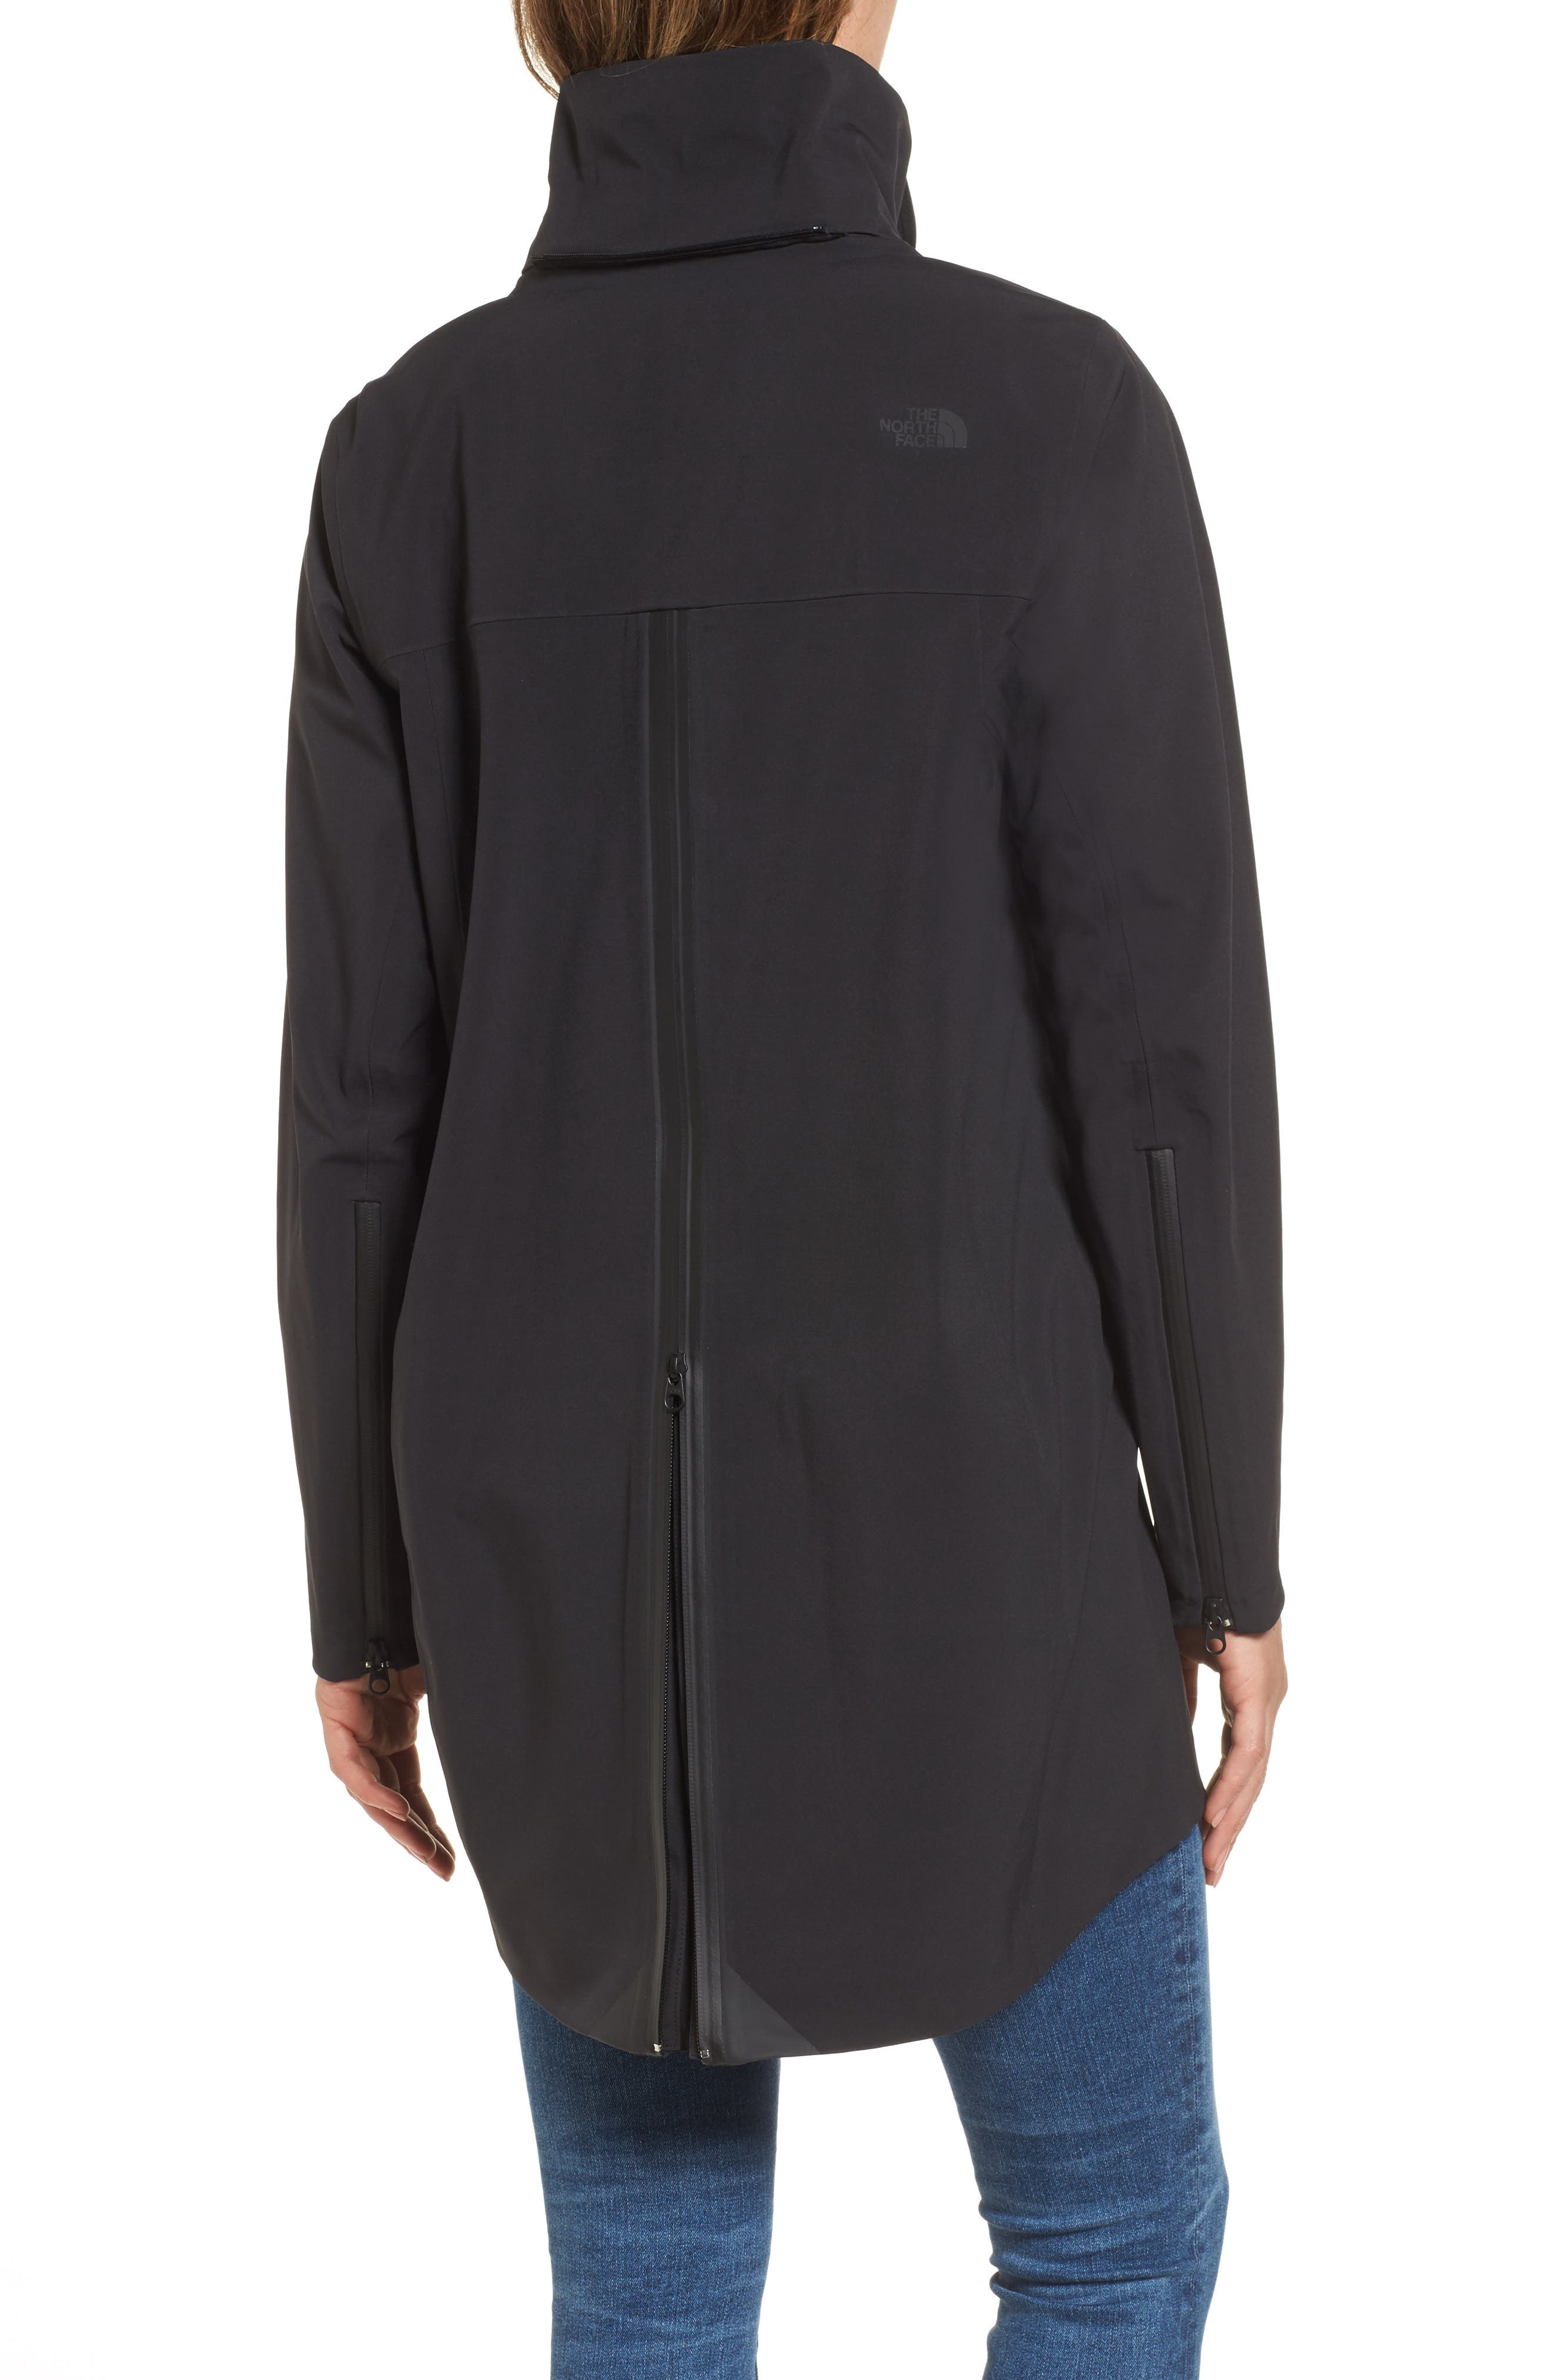 THE NORTH FACE, Apex Flex Gore-Tex<sup>®</sup> Trench Coat, Alternate thumbnail 5, color, BLACK